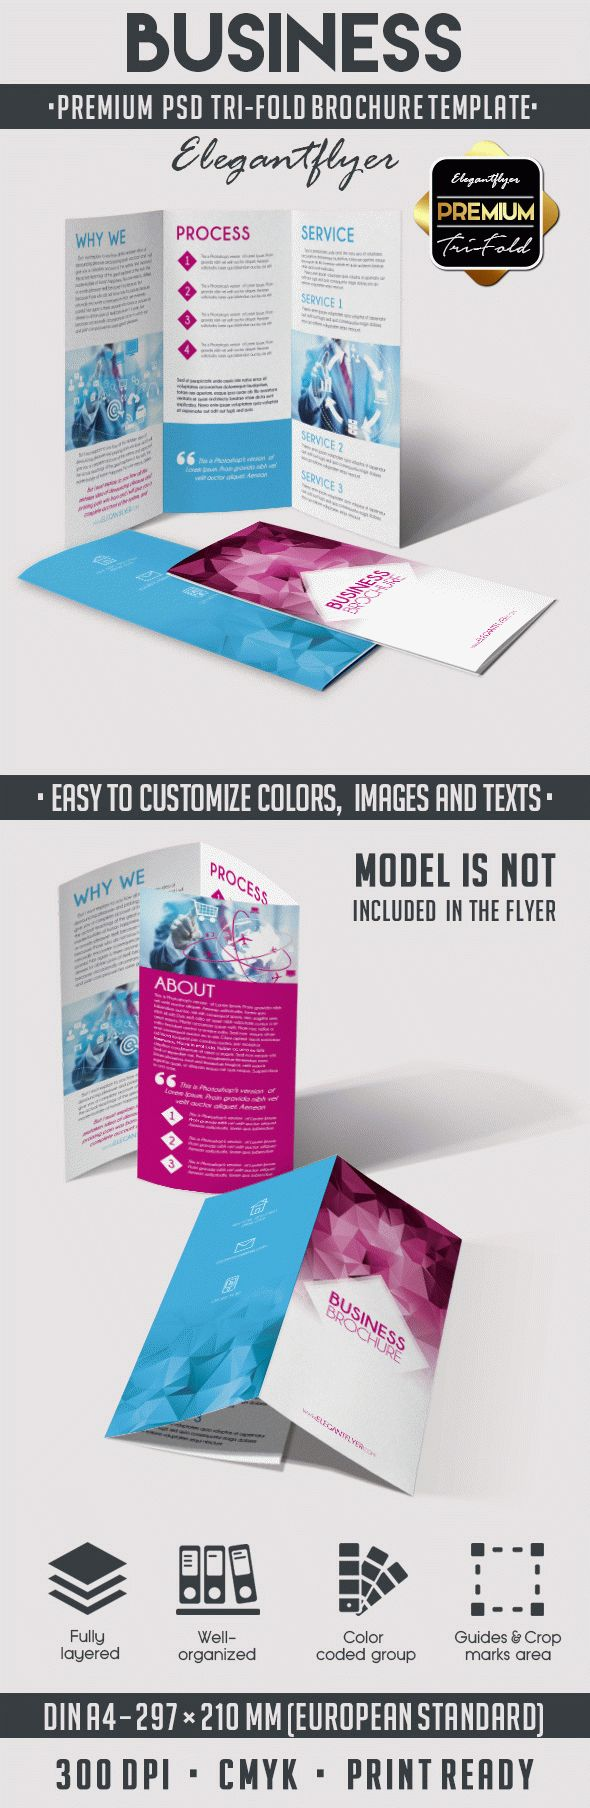 Business tri fold brochure psd template by elegantflyer for Simple tri fold brochure template